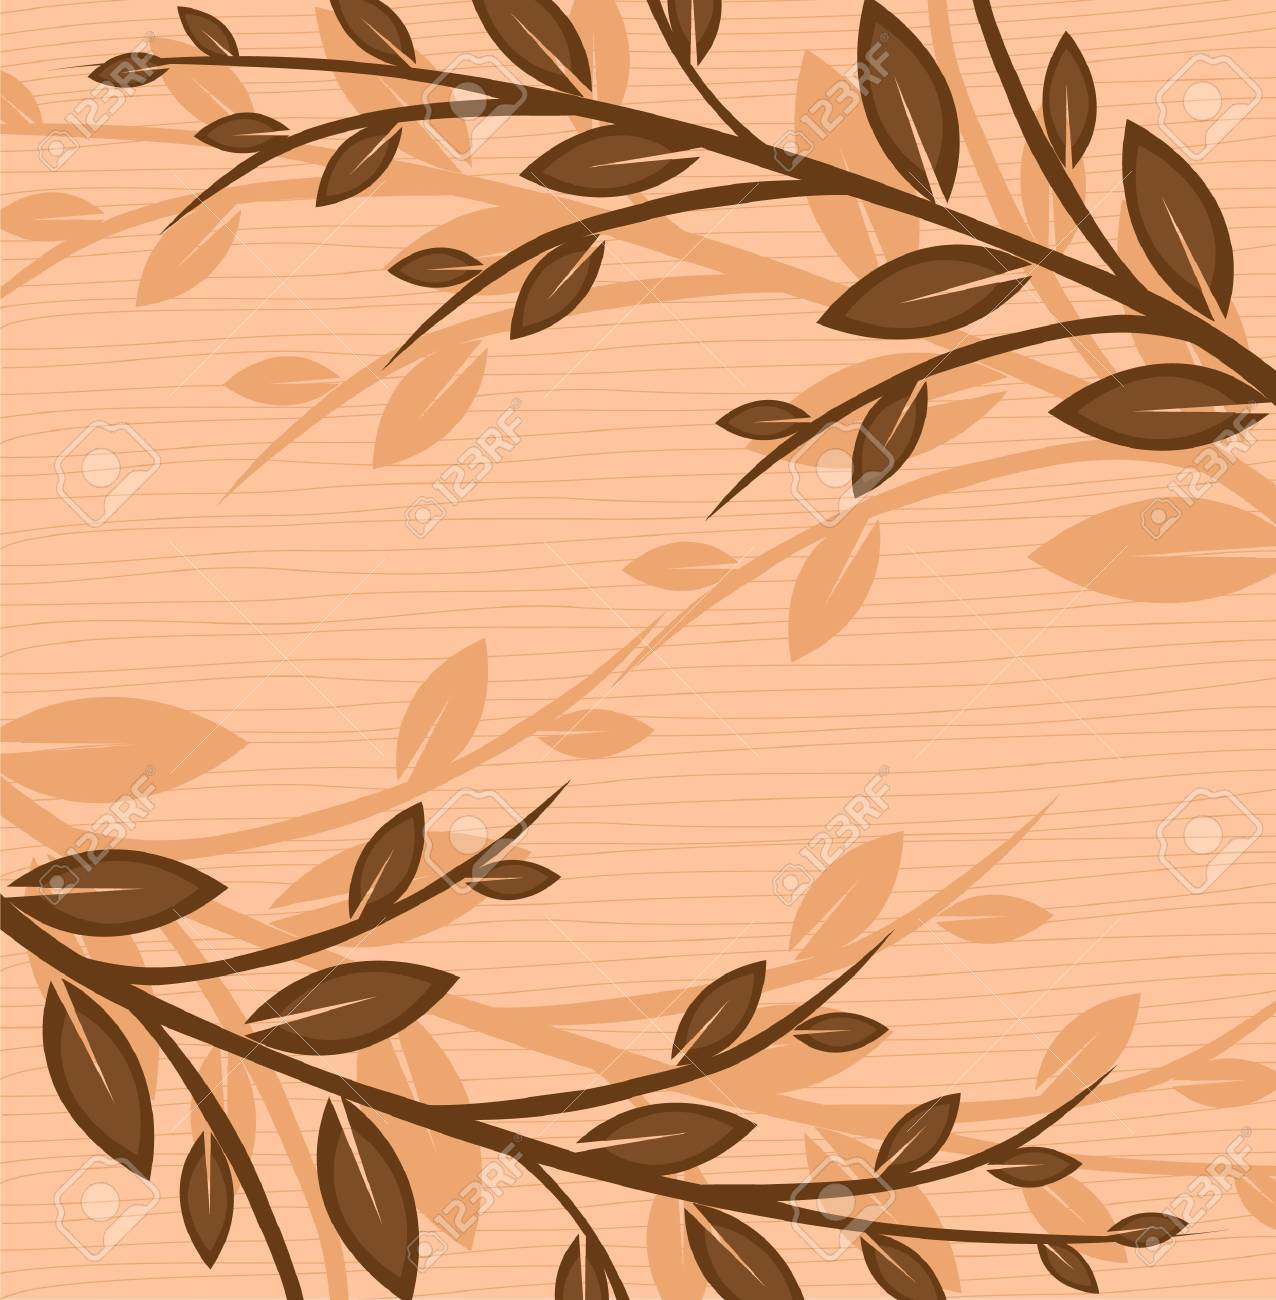 Branch of a plant, the Japanese style, background Stock Vector - 17822909